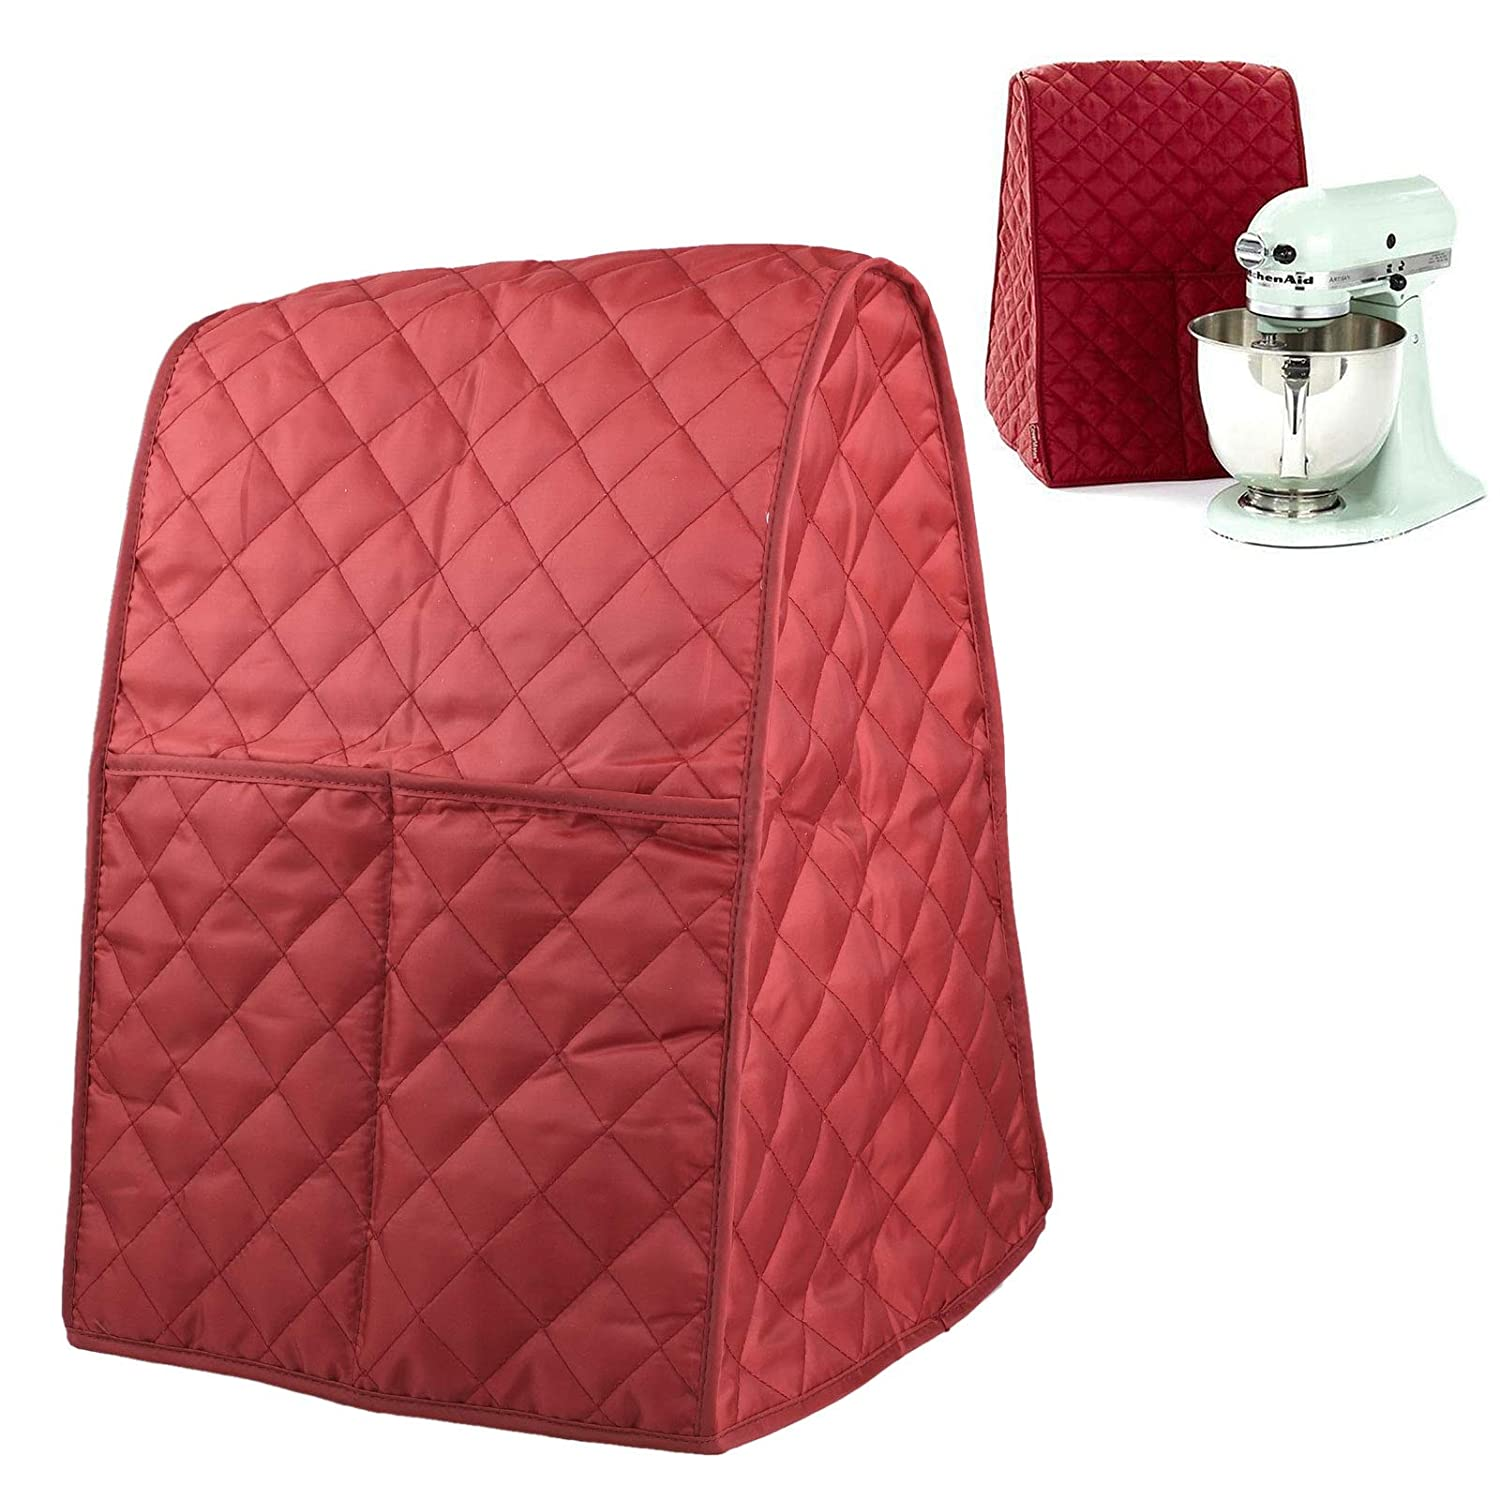 Mixer Cover, EEEKit Universal Dust-Proof Stand Mixer Cover Quilted Pocket Organizer Bag Mat Case for Home, Kitchen Kitchenaid, Sunbeam, Cuisinart, Hamilton Mixer